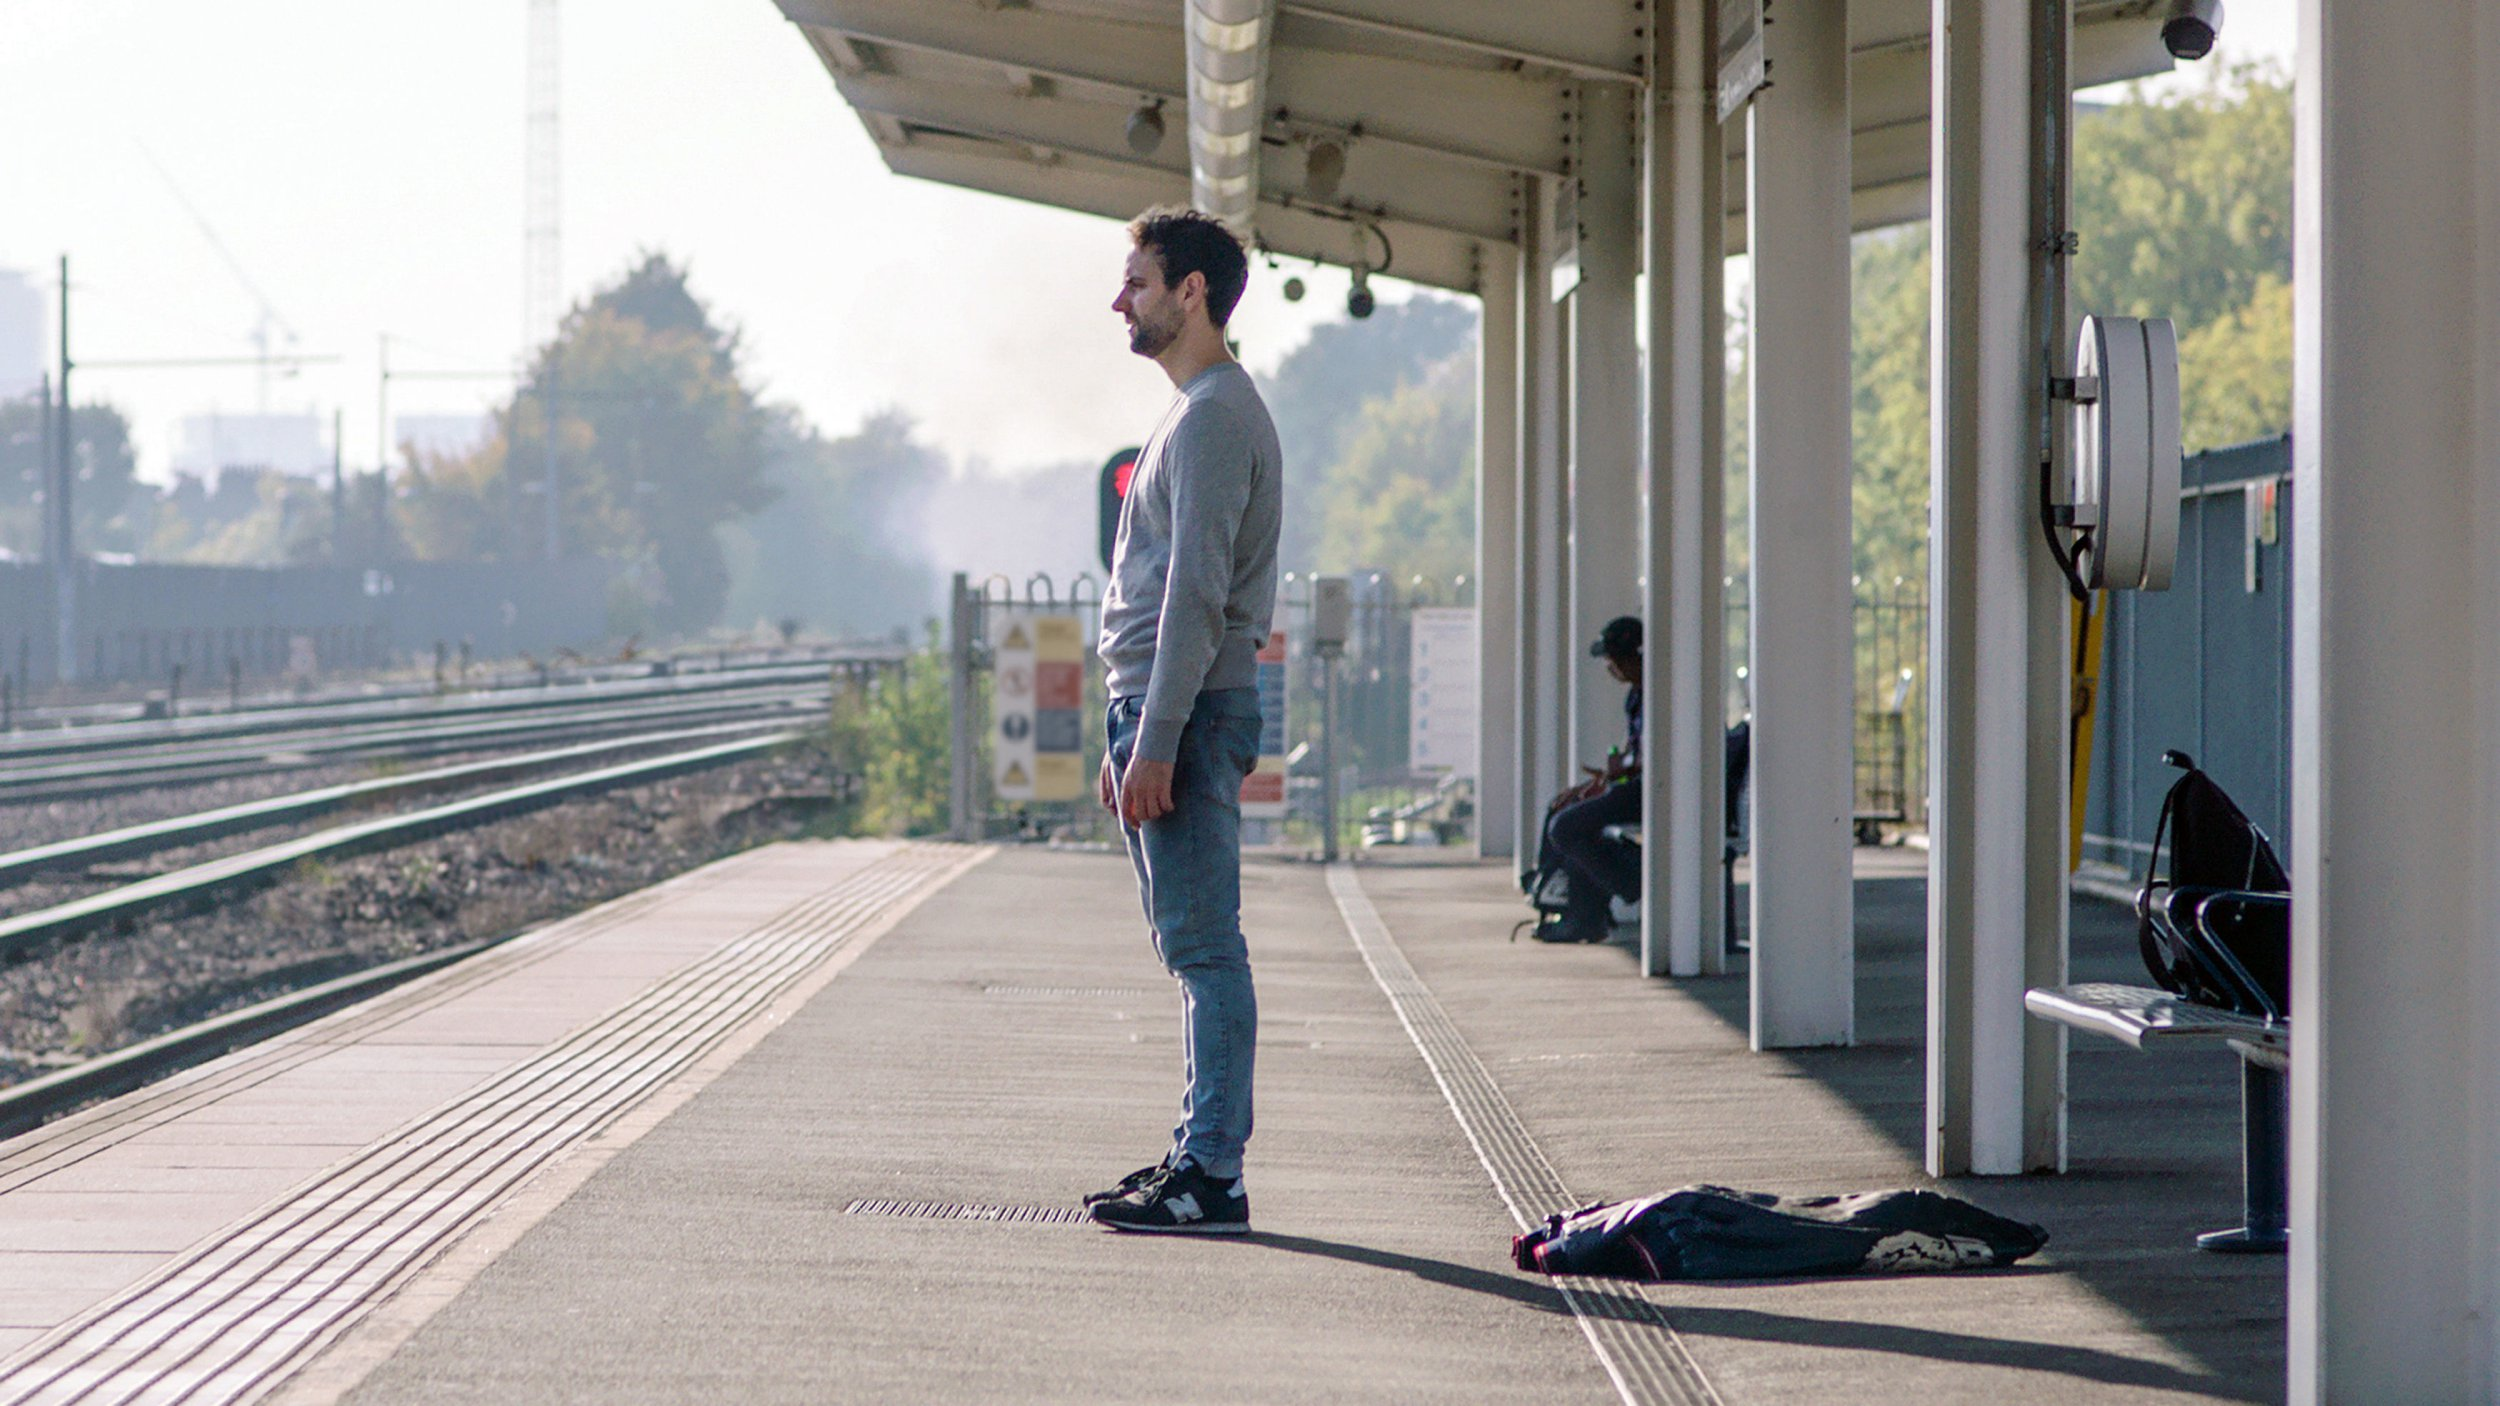 Handout image issued by Network Rail from its campaign video Small Talk Saves Lives, showing a man standing on a railway platform. According to British Transport Police data published by Network Rail there has been a 20% increase in the number of times passengers have acted to prevent suicide on Britain's railways. PRESS ASSOCIATION Photo. Issue date: Wednesday November 7, 2018. The new figures show that some 163 interventions were made by members of the public between January and September compared with 136 during the same period in 2017. See PA story RAIL Suicide. Photo credit should read: Network Rail/PA Wire NOTE TO EDITORS: This handout photo may only be used in for editorial reporting purposes for the contemporaneous illustration of events, things or the people in the image or facts mentioned in the caption. Reuse of the picture may require further permission from the copyright holder.